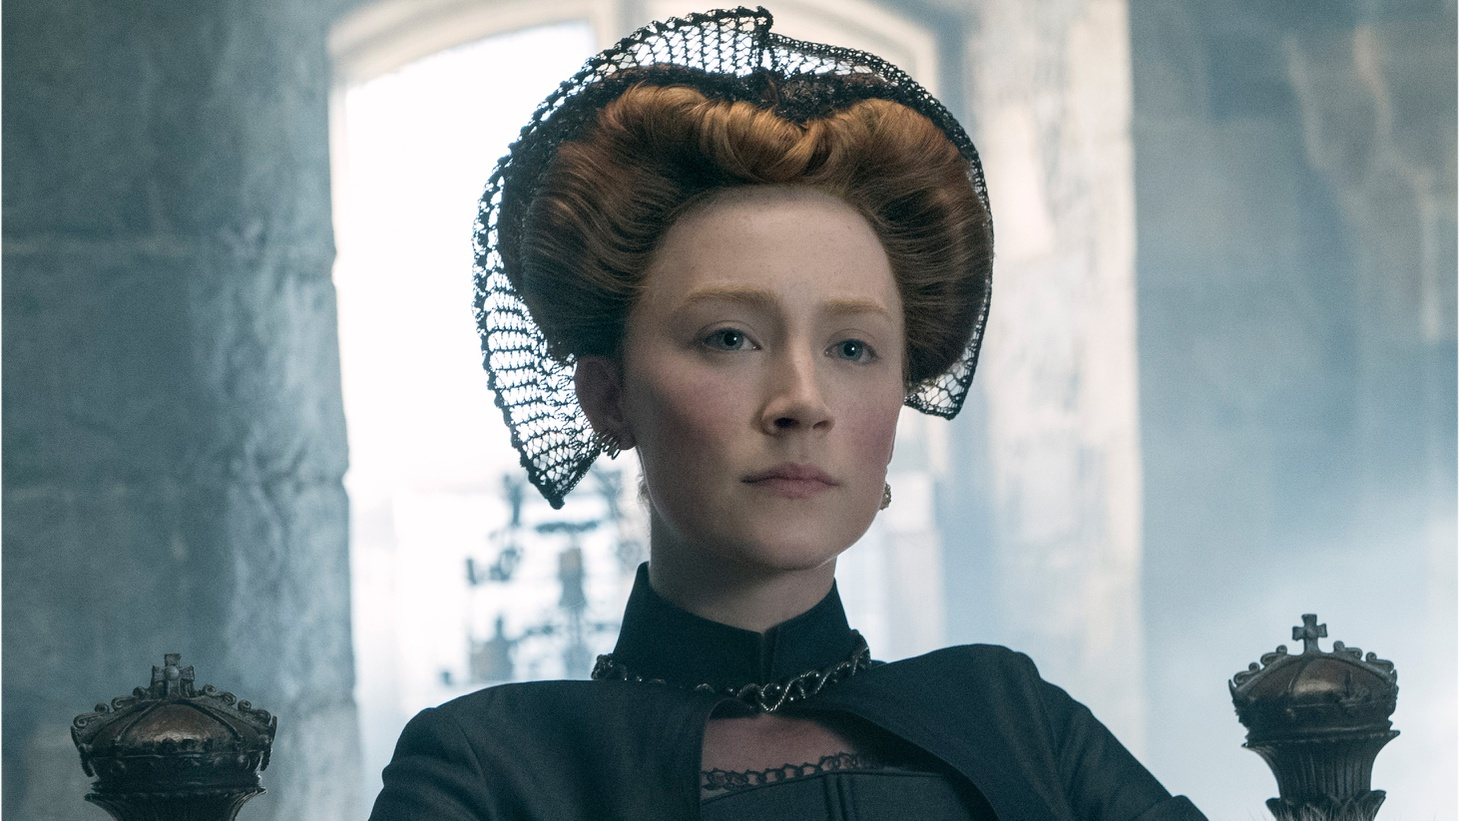 Saoirse Ronan stars as Mary Stuart in Mary Queen of Scots.